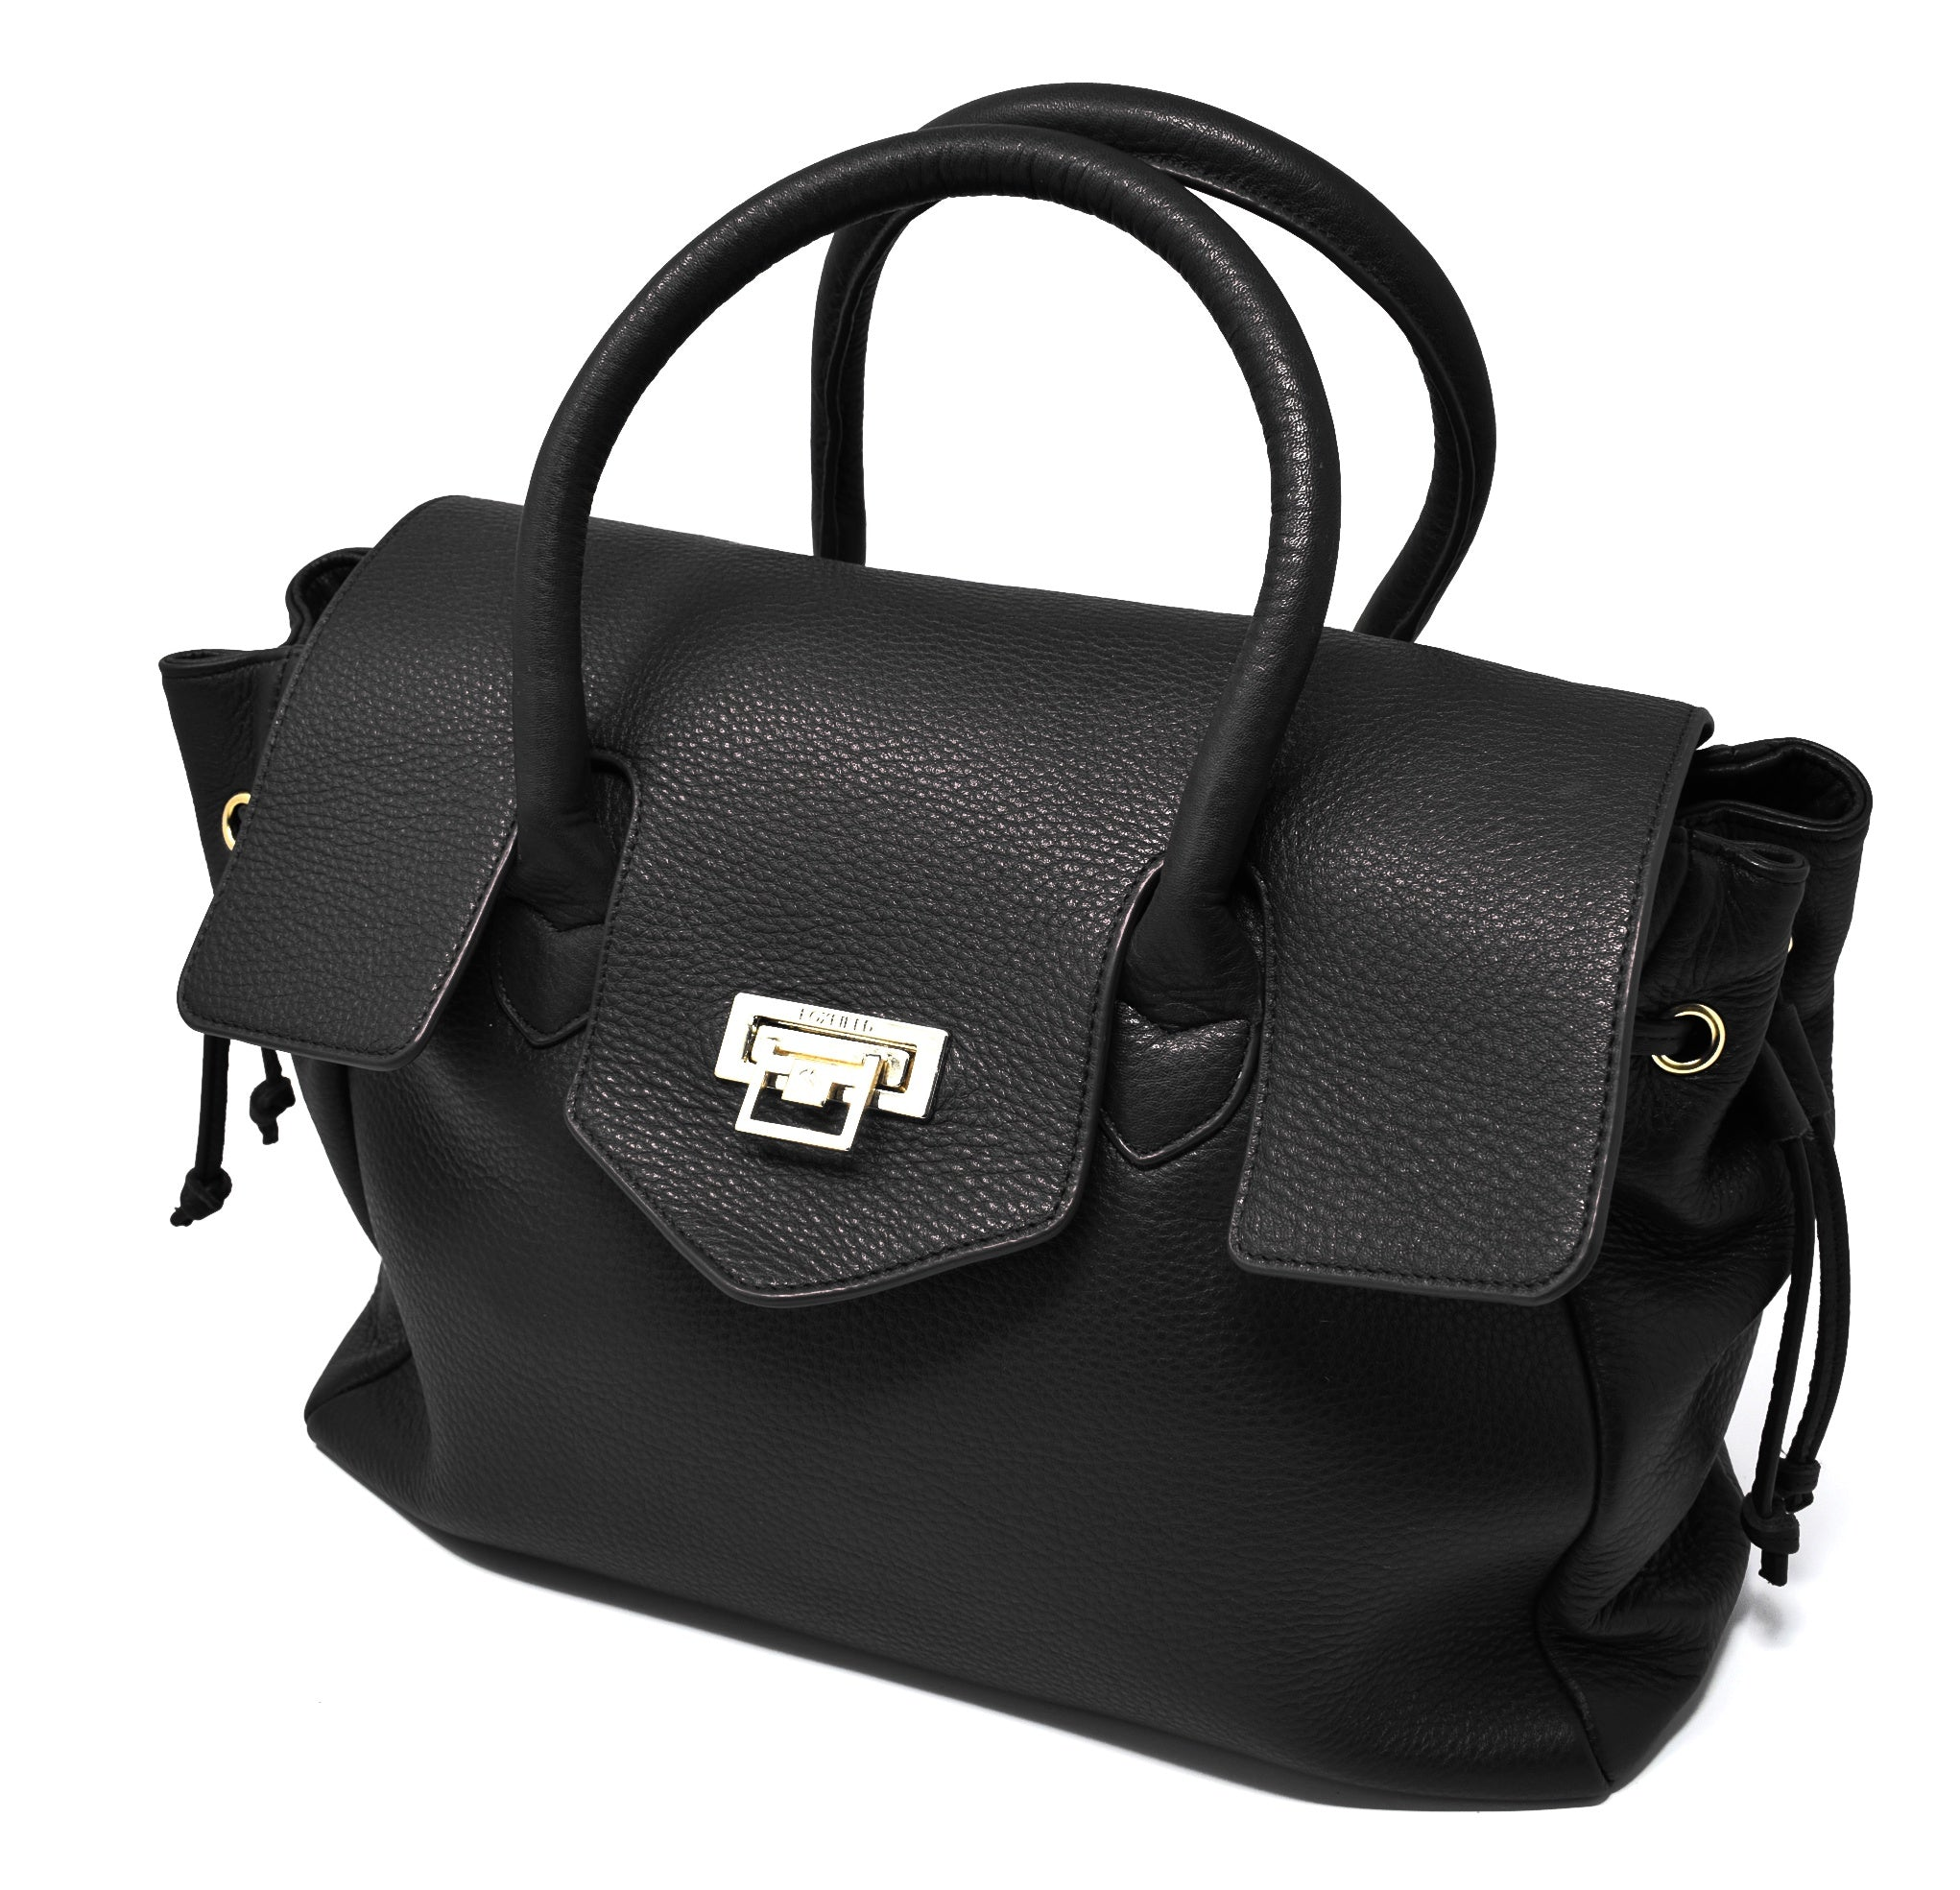 Foxfield - Hawkshead Black Leather Handbag